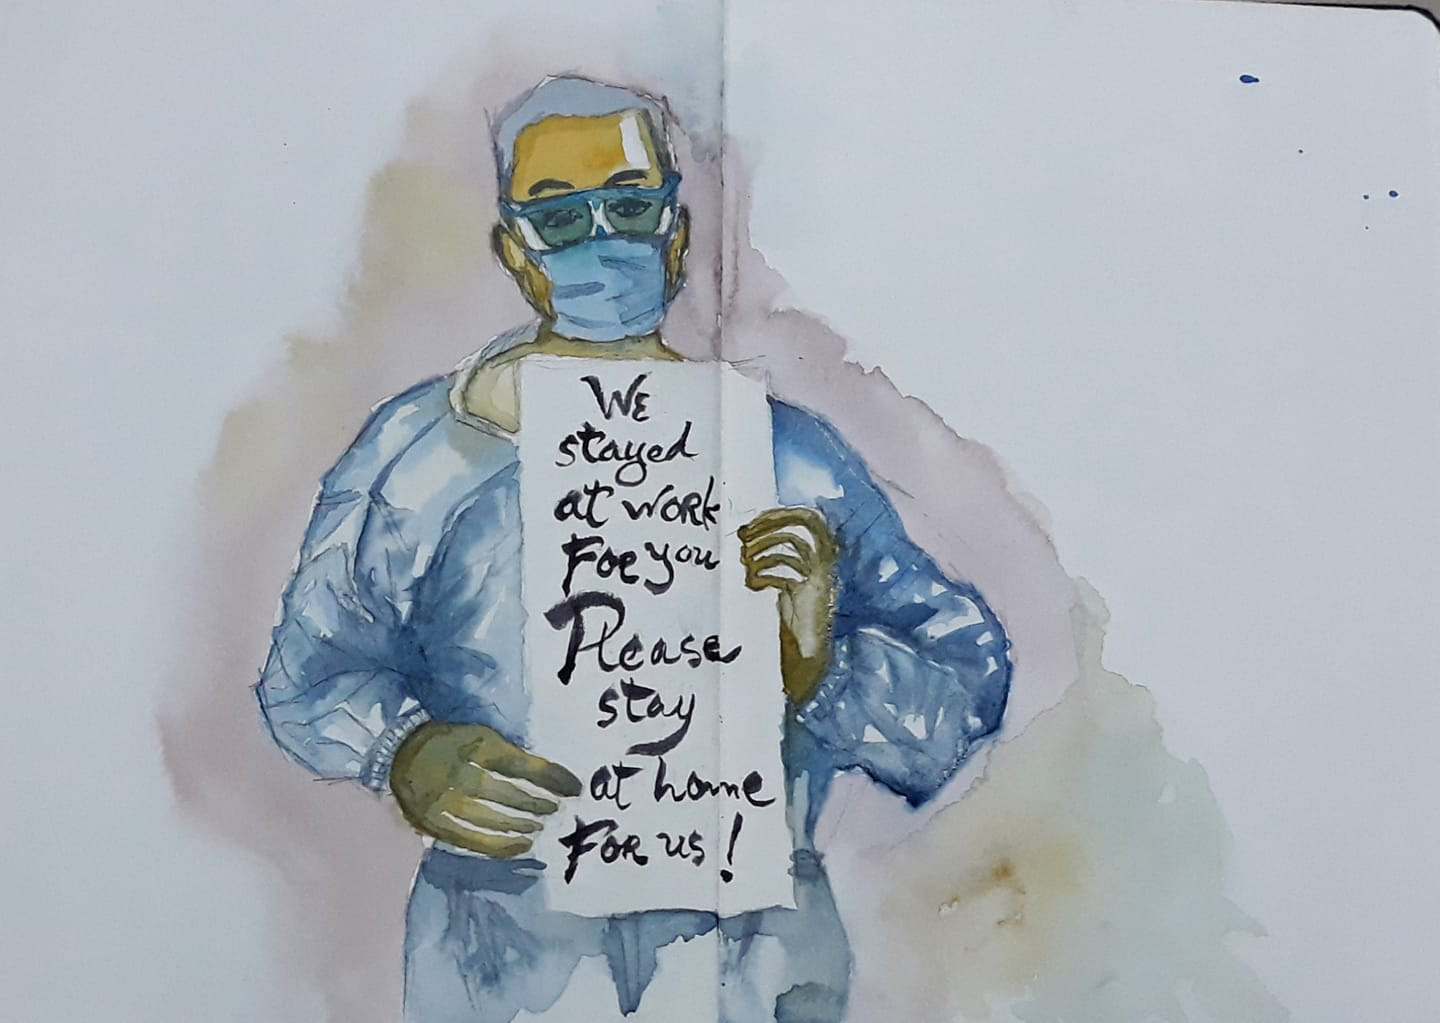 'We stay at work for you, please stay home for us' has been the motto of many healthcare professionals since the pandemic started, as shown in this sketch by Dang Truong Giang.